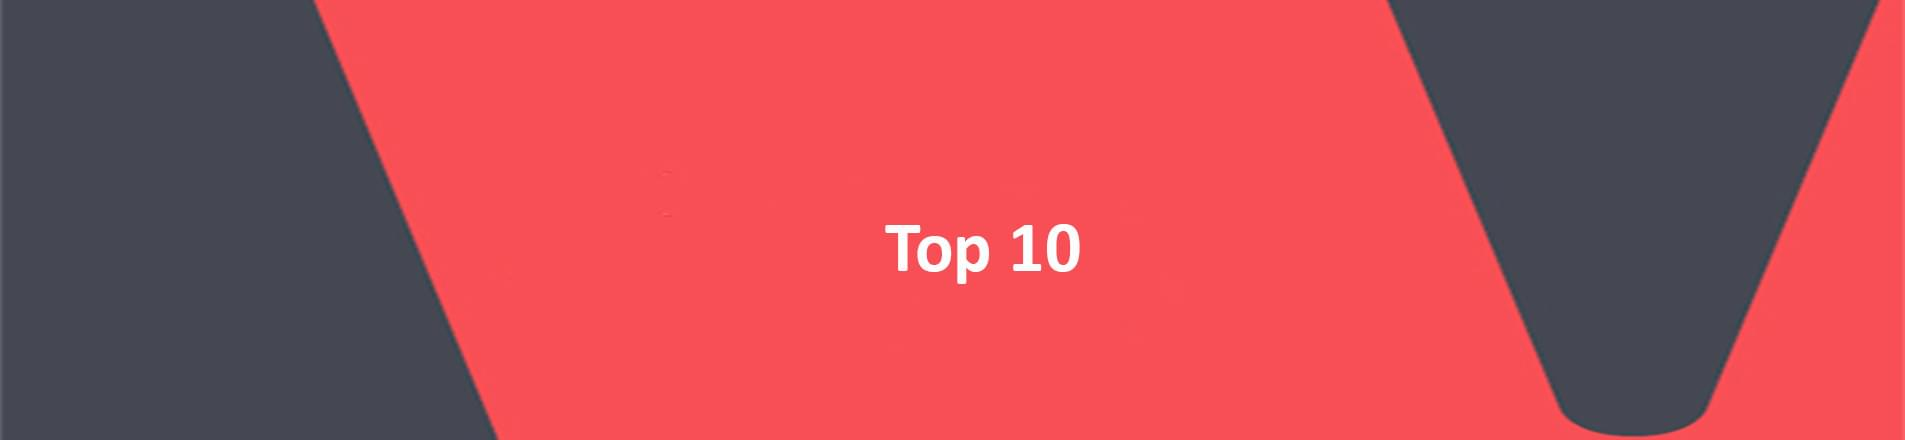 Top 10 in white on a red VECIDA branded background